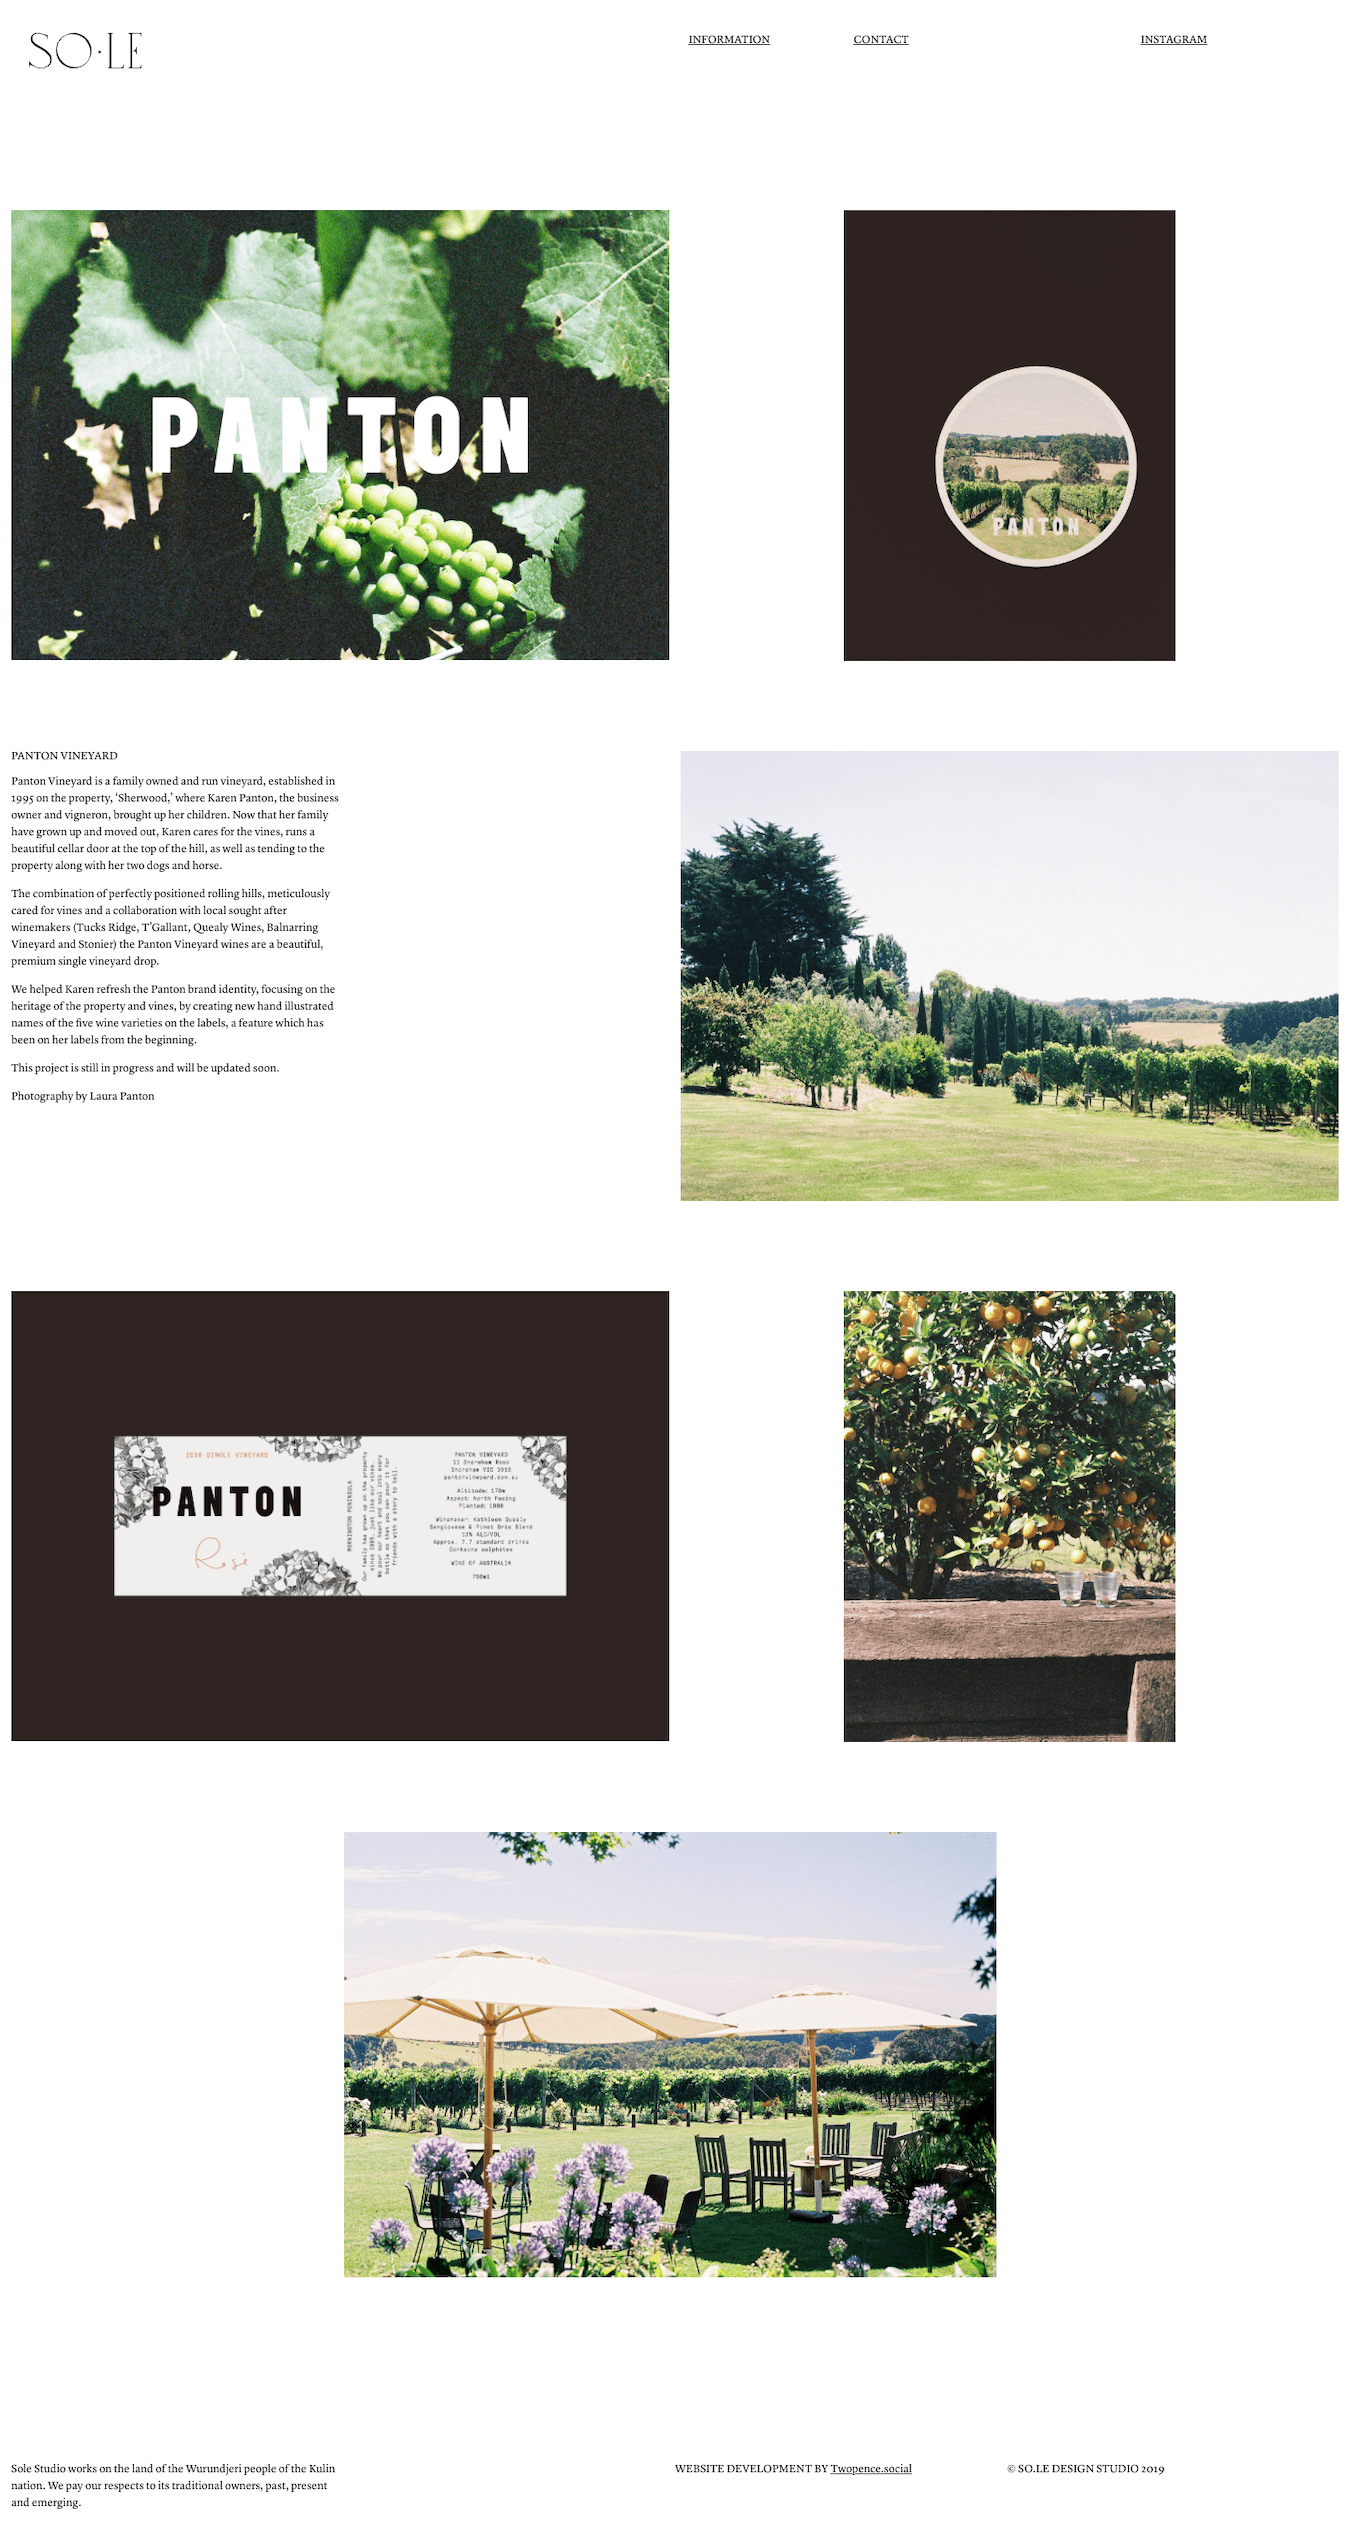 Sole Studio Website Design & Development Folio Page